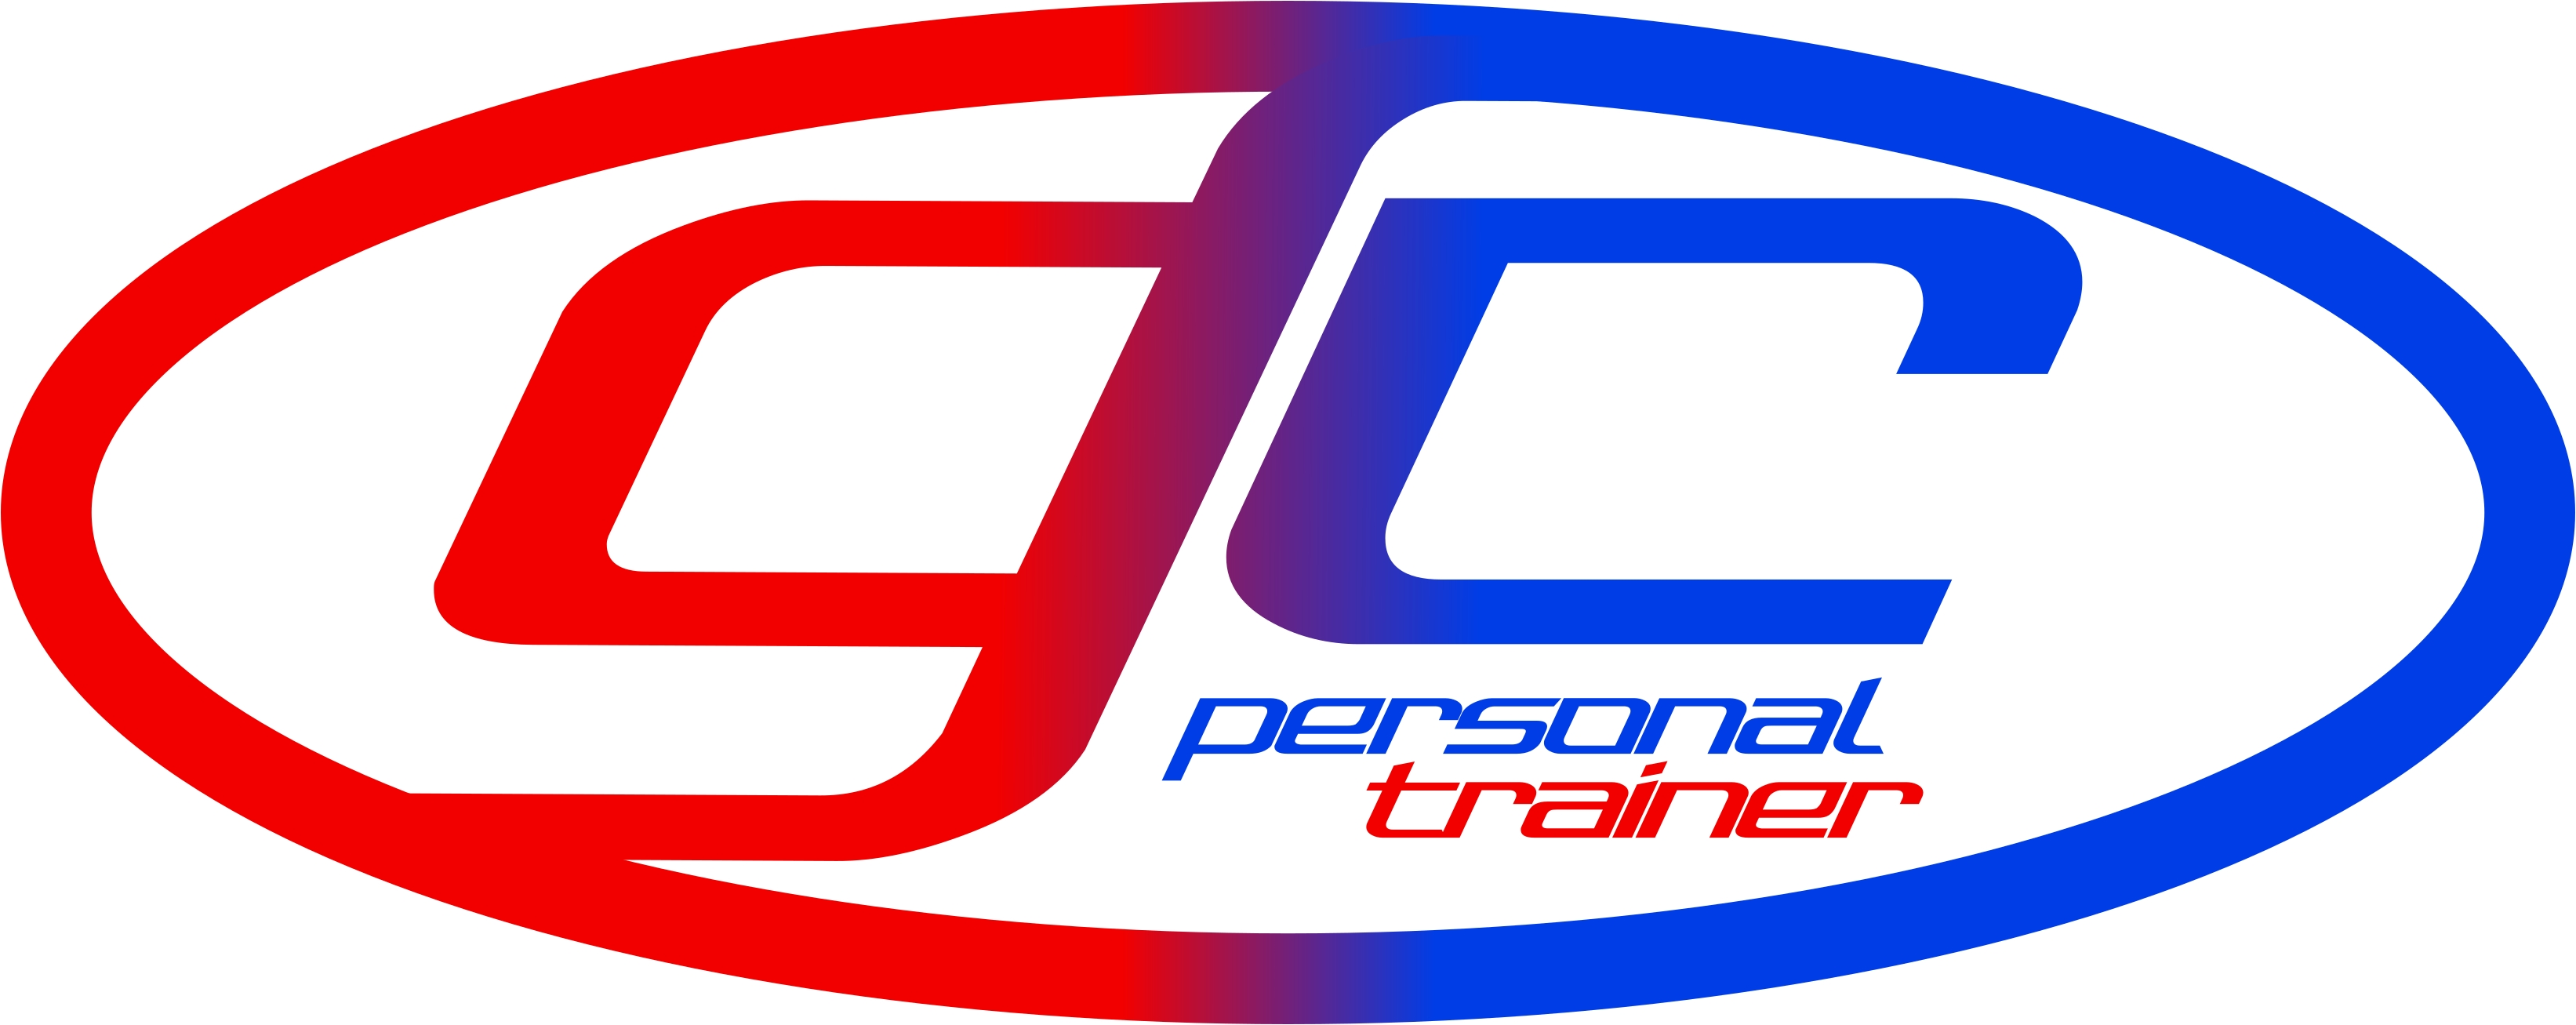 GC personal trainer